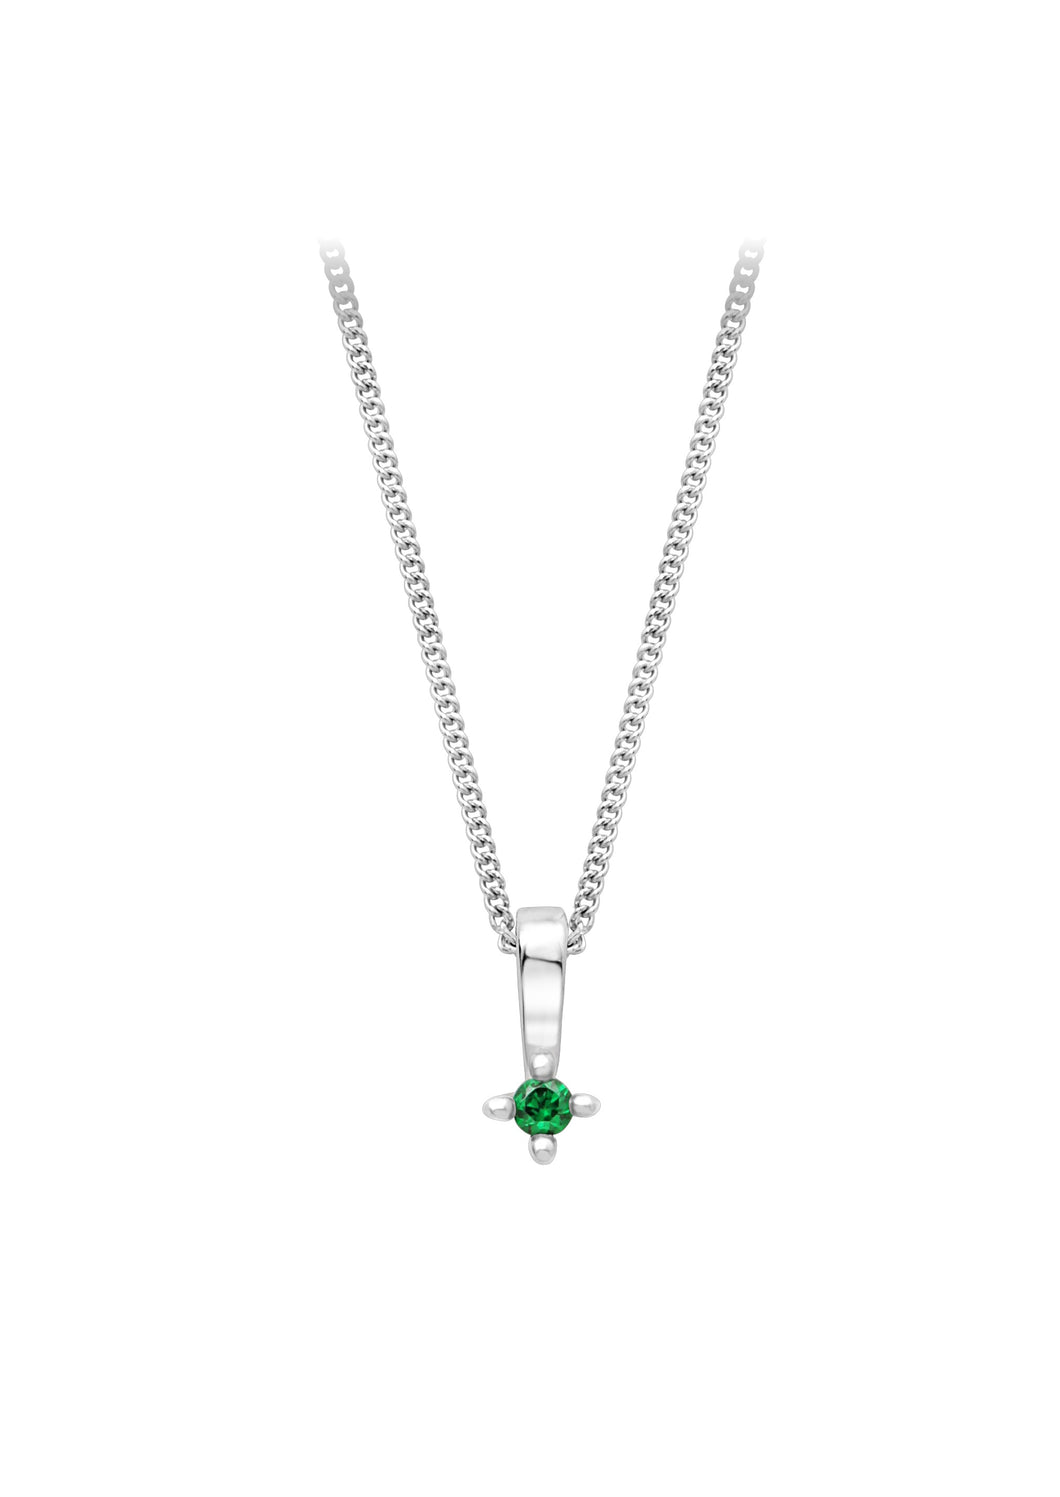 Green Diamond Solitaire Pendant  10k White Gold